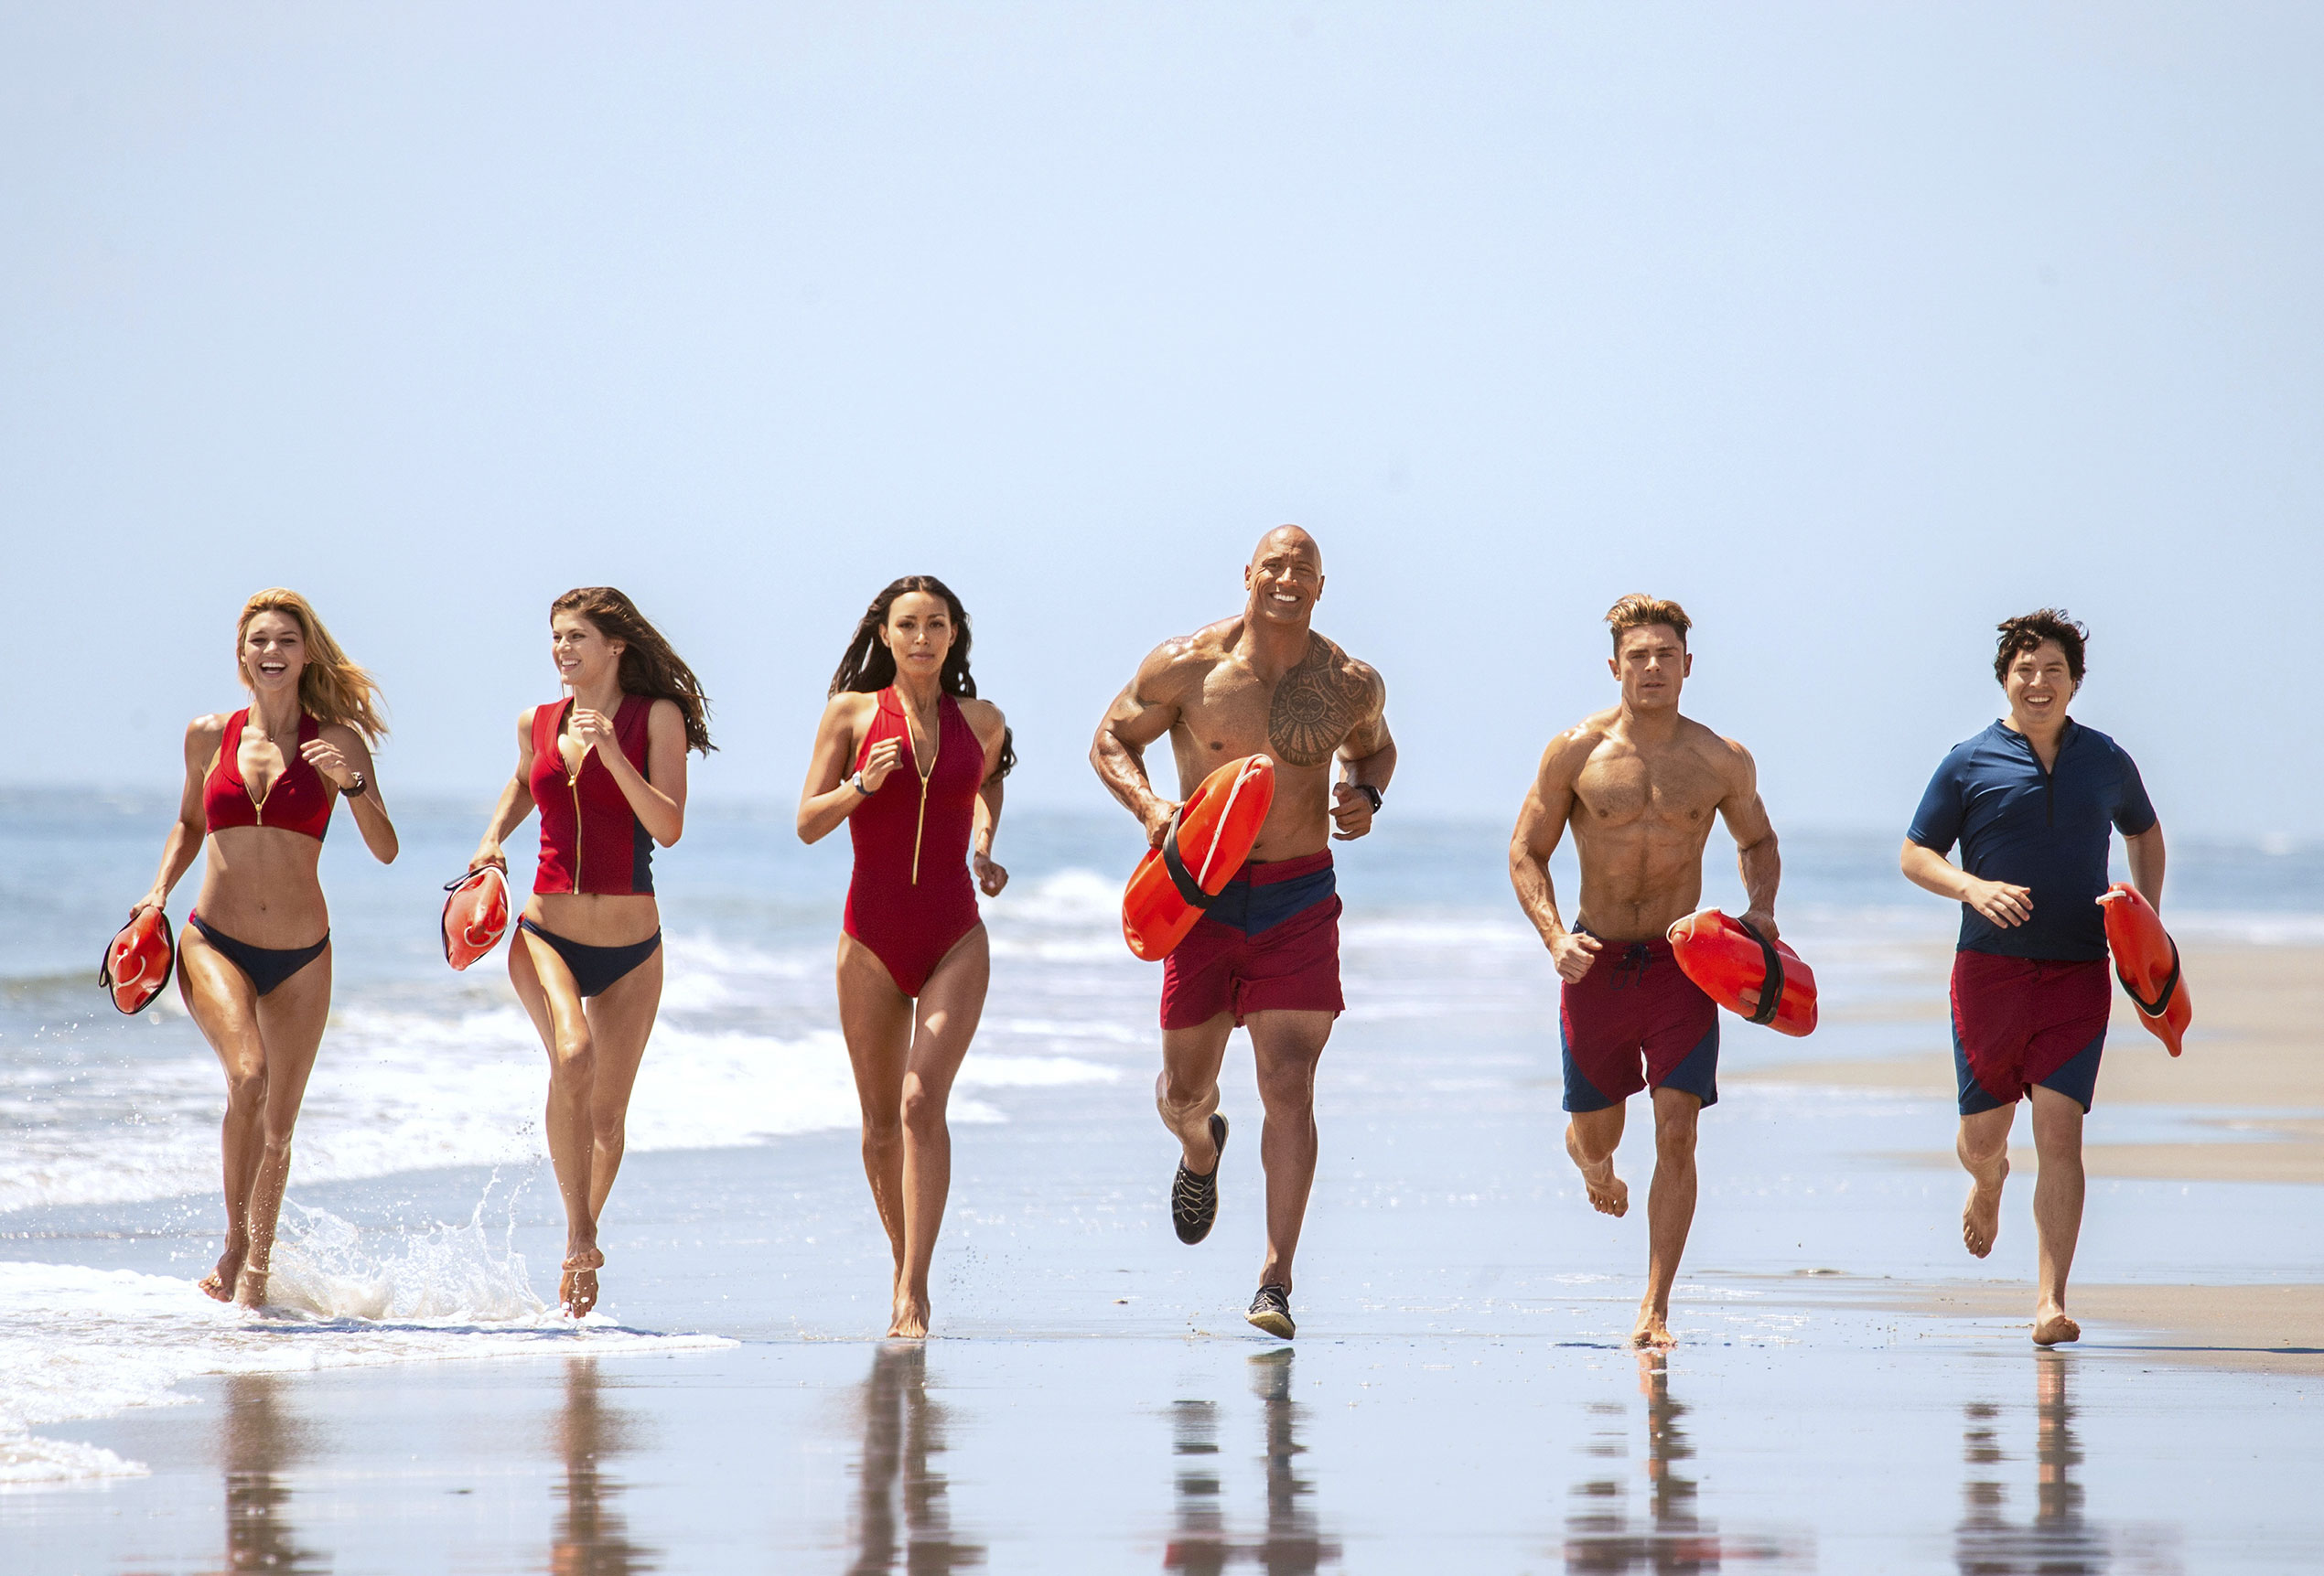 Keying off the '90s show it's based on, Baywatch keeps its hunks and lovelies trotting in slo-mo